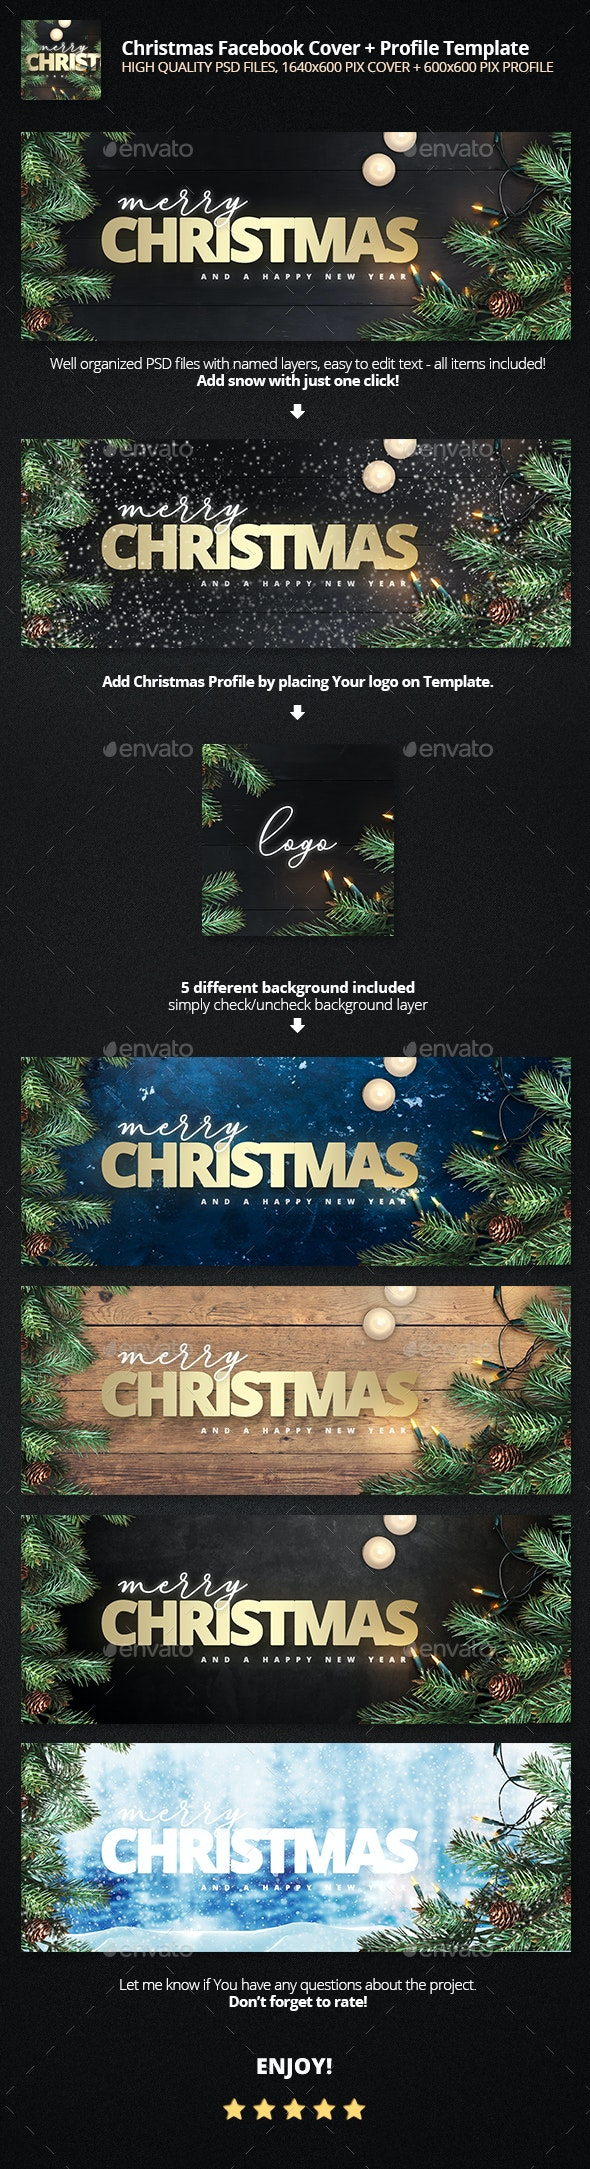 Merry Christmas - 5 Backgrounds FB Cover Template - Facebook Timeline Covers Social Media